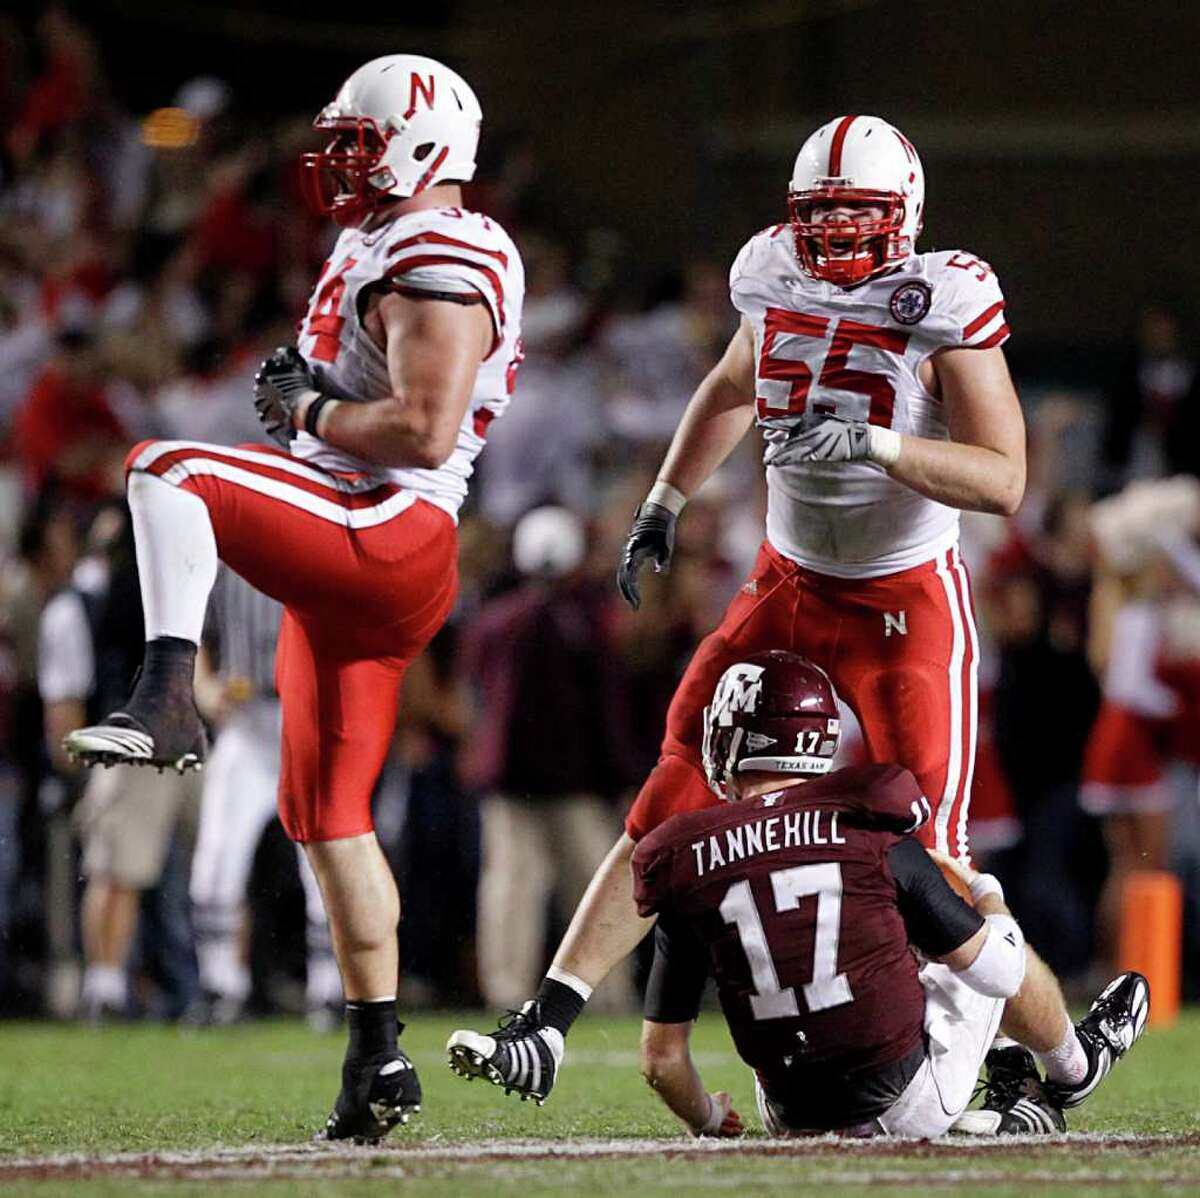 Nebraska Cornhuskers defensive tackle Jared Crick (94) and defensive tackle Baker Steinkuhler (55) celebrate Cricks sacjk of Texas A&M Aggies quarterback Ryan Tannehill (17) in the third quarter by at Kyle Field, Saturday, November 20, 2010. The Aggies won on a field goal 9-6. (Tom Fox/The Dallas Morning News) 2nd Half